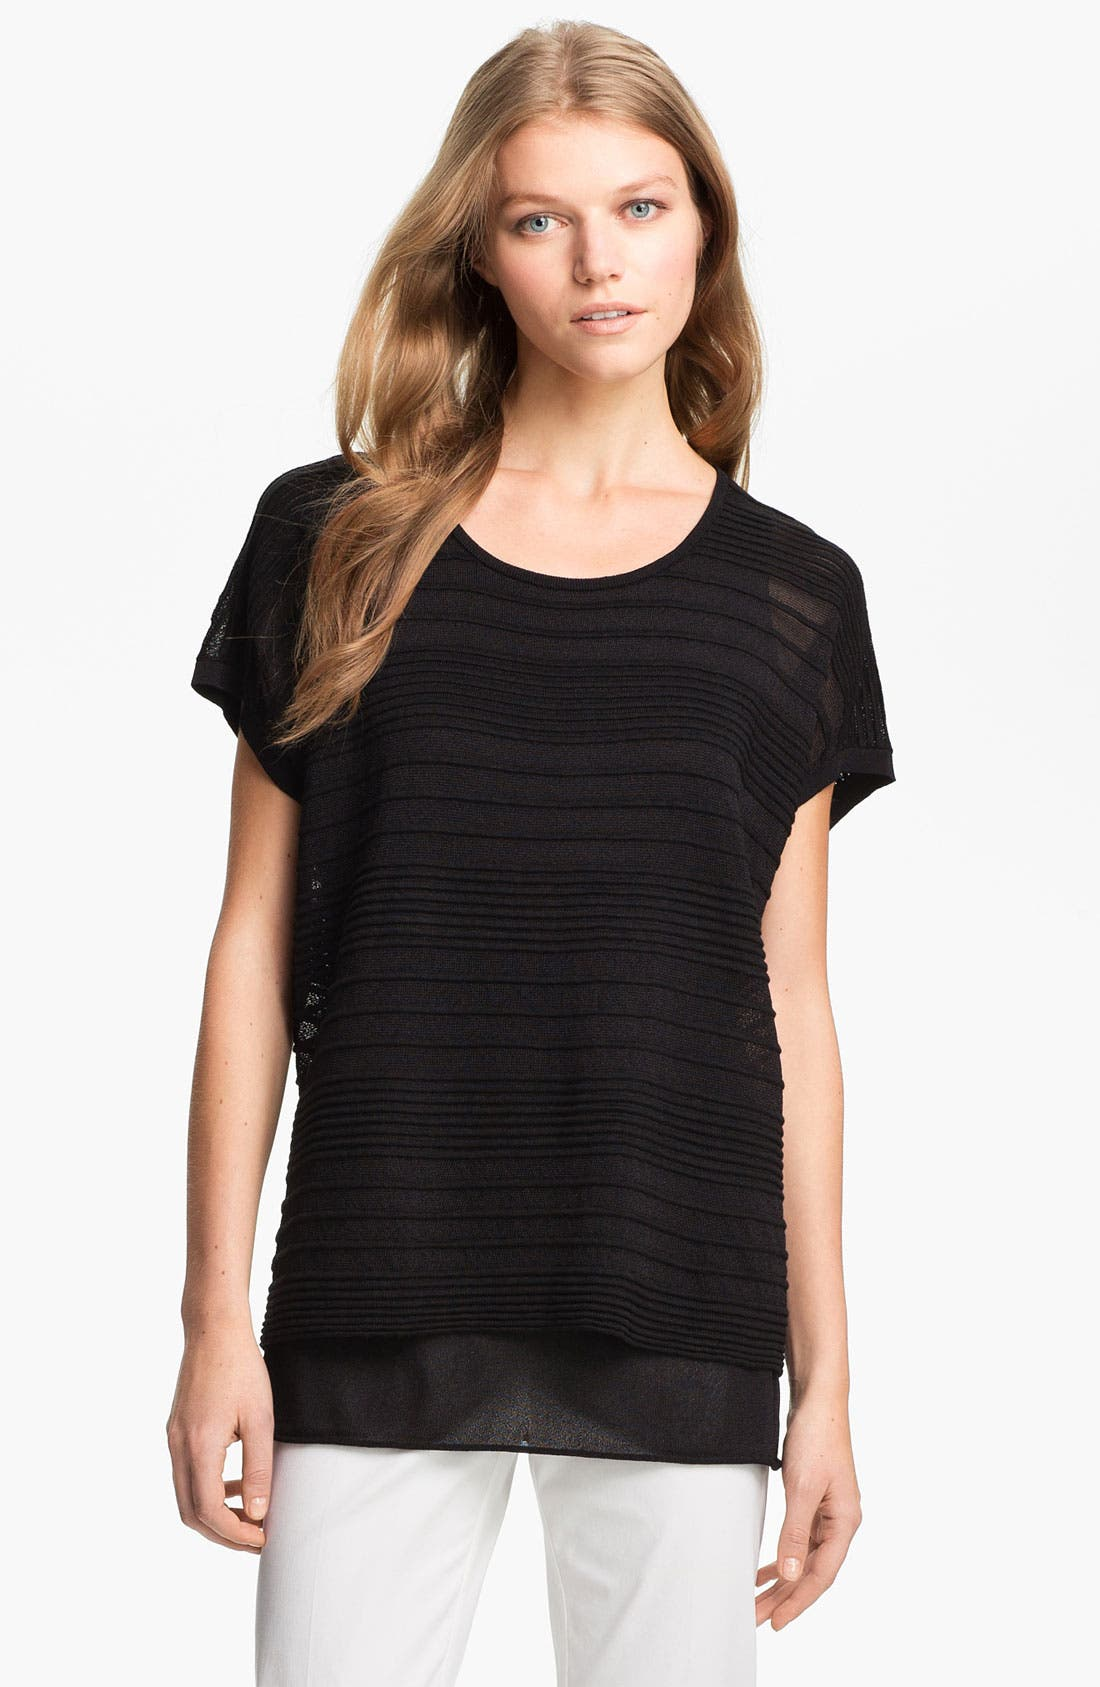 Alternate Image 1 Selected - Lafayette 148 New York 'Pure Radiance' Layered Top